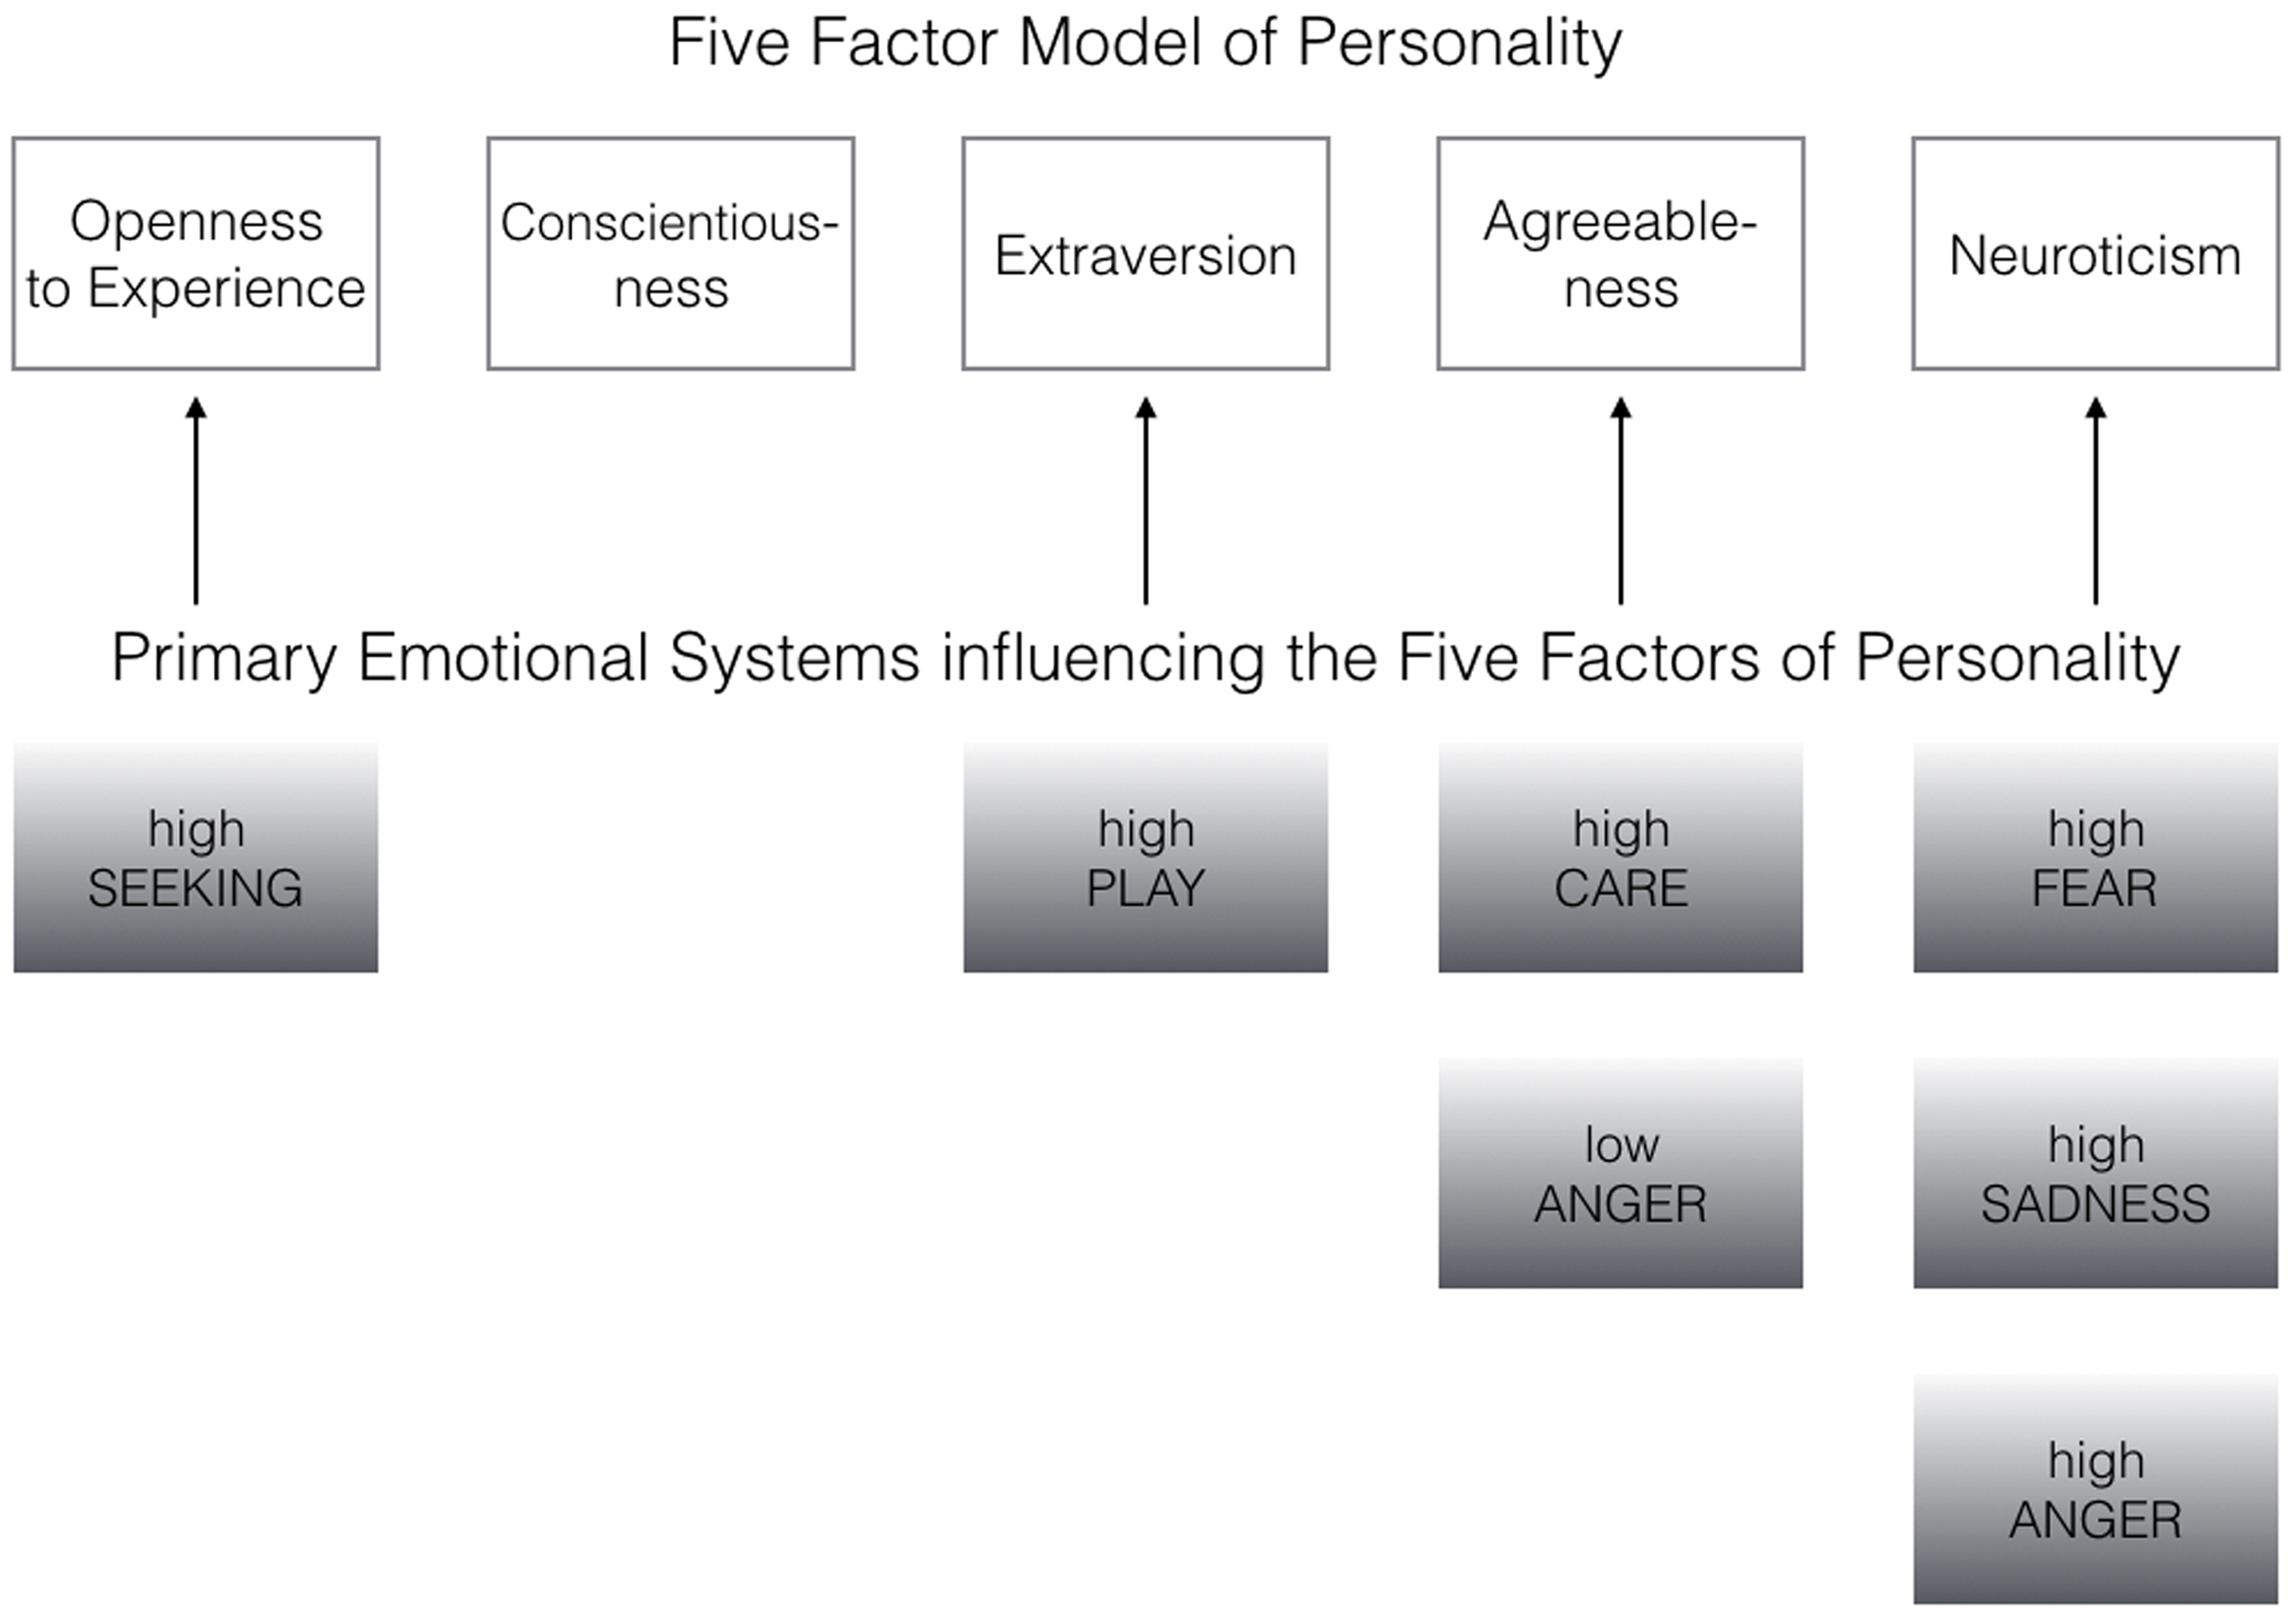 affective personality and primary emotion systems Neurologizing the psychology of affects: how appraisal-based constructivism and basic  before discussing why my affective neuroscience emotion systems.